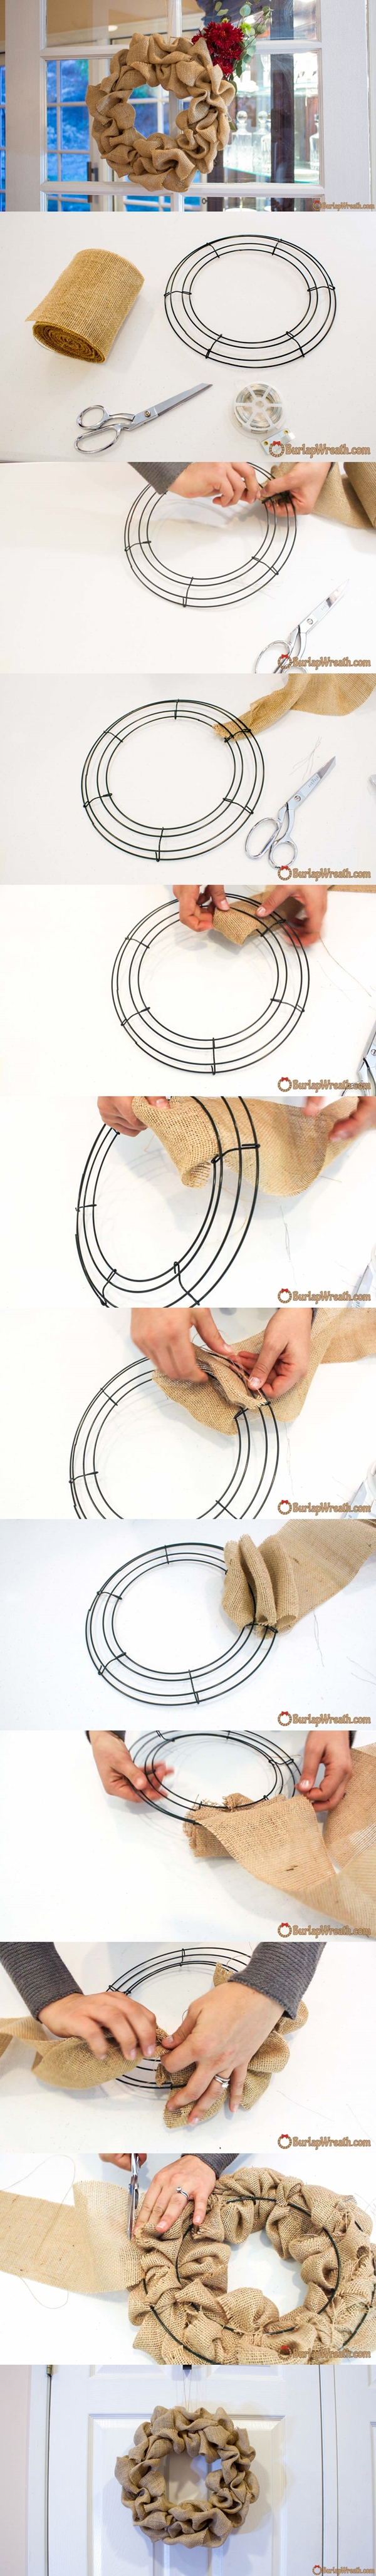 diy-wreath-tutorials-can-actually-put-use